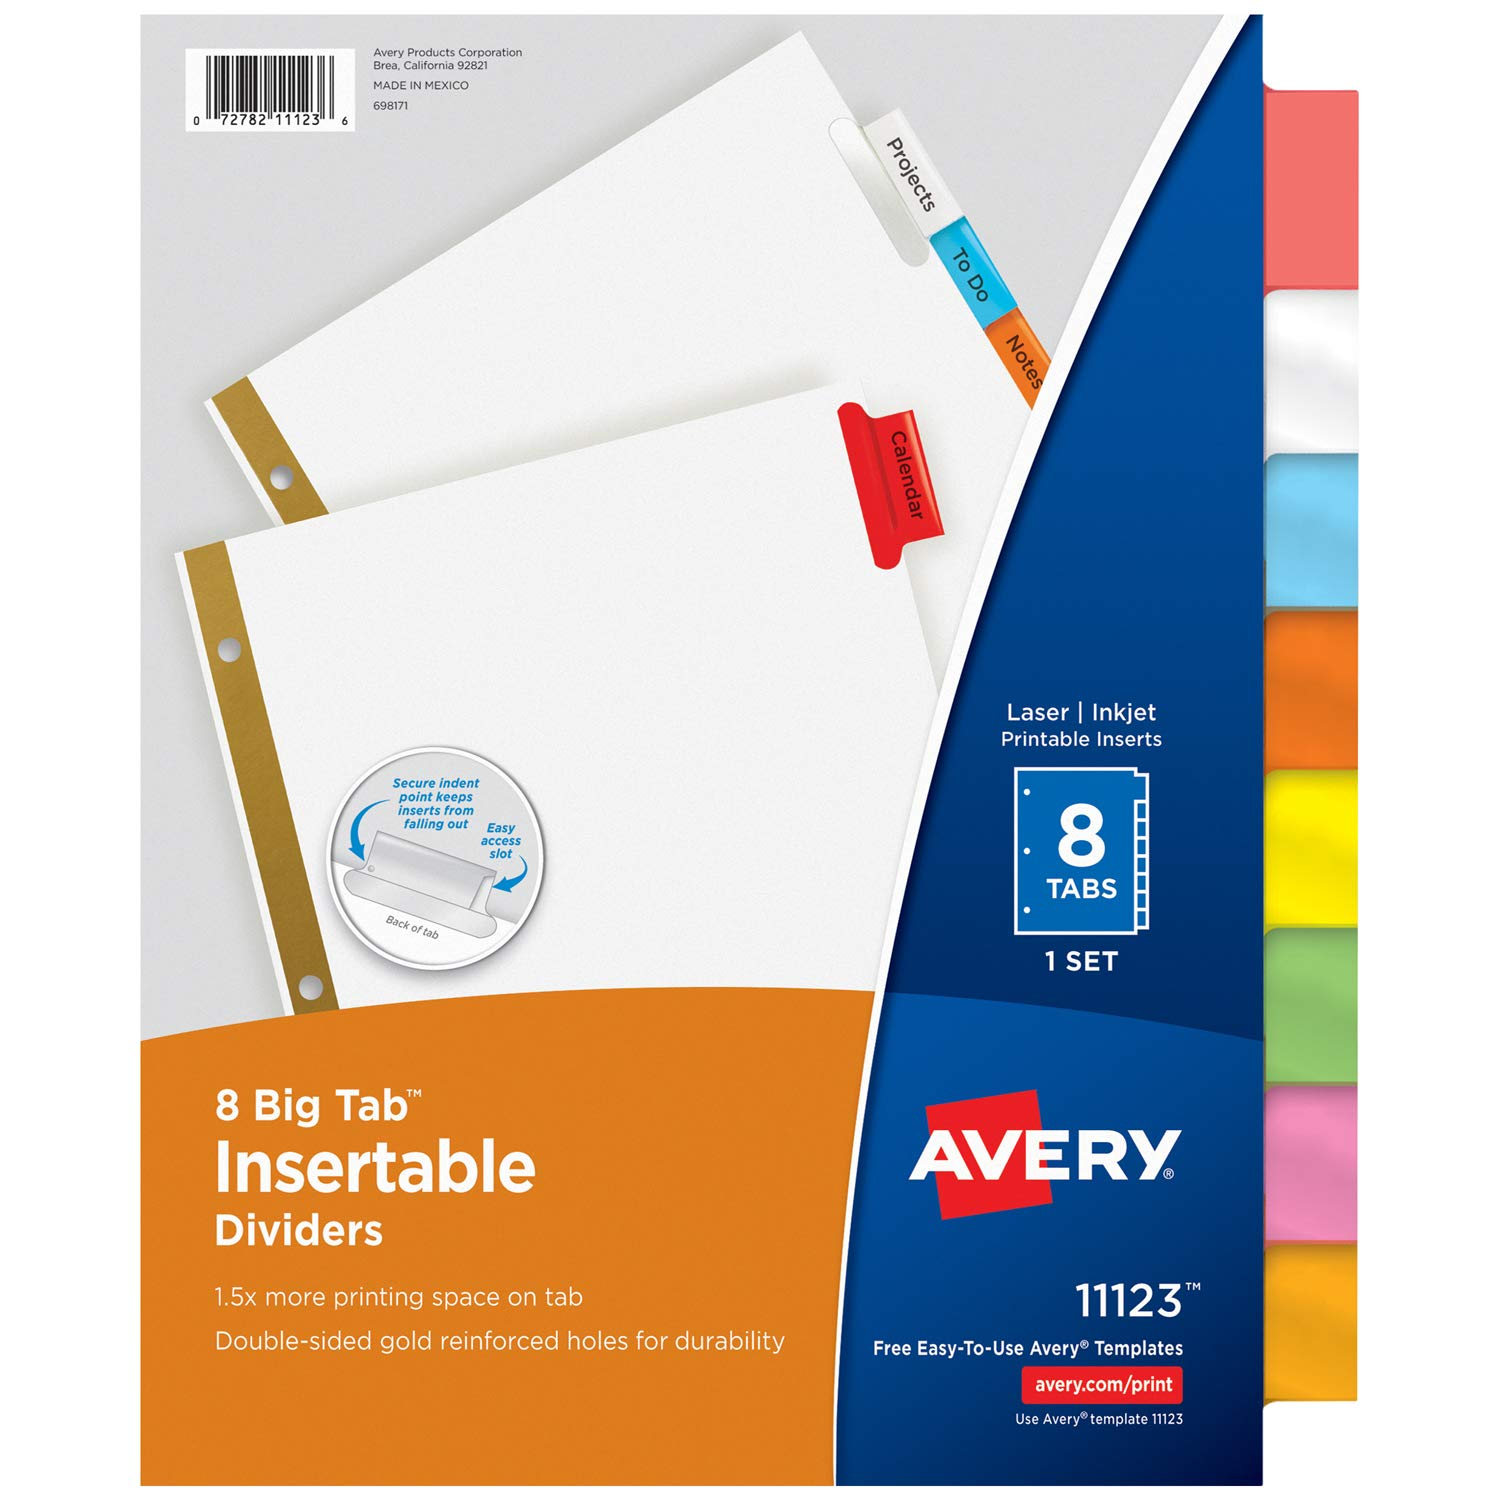 amazoncom avery big tab insertable dividers 8 multicolor tabs 1 set 11123 binder index dividers office products